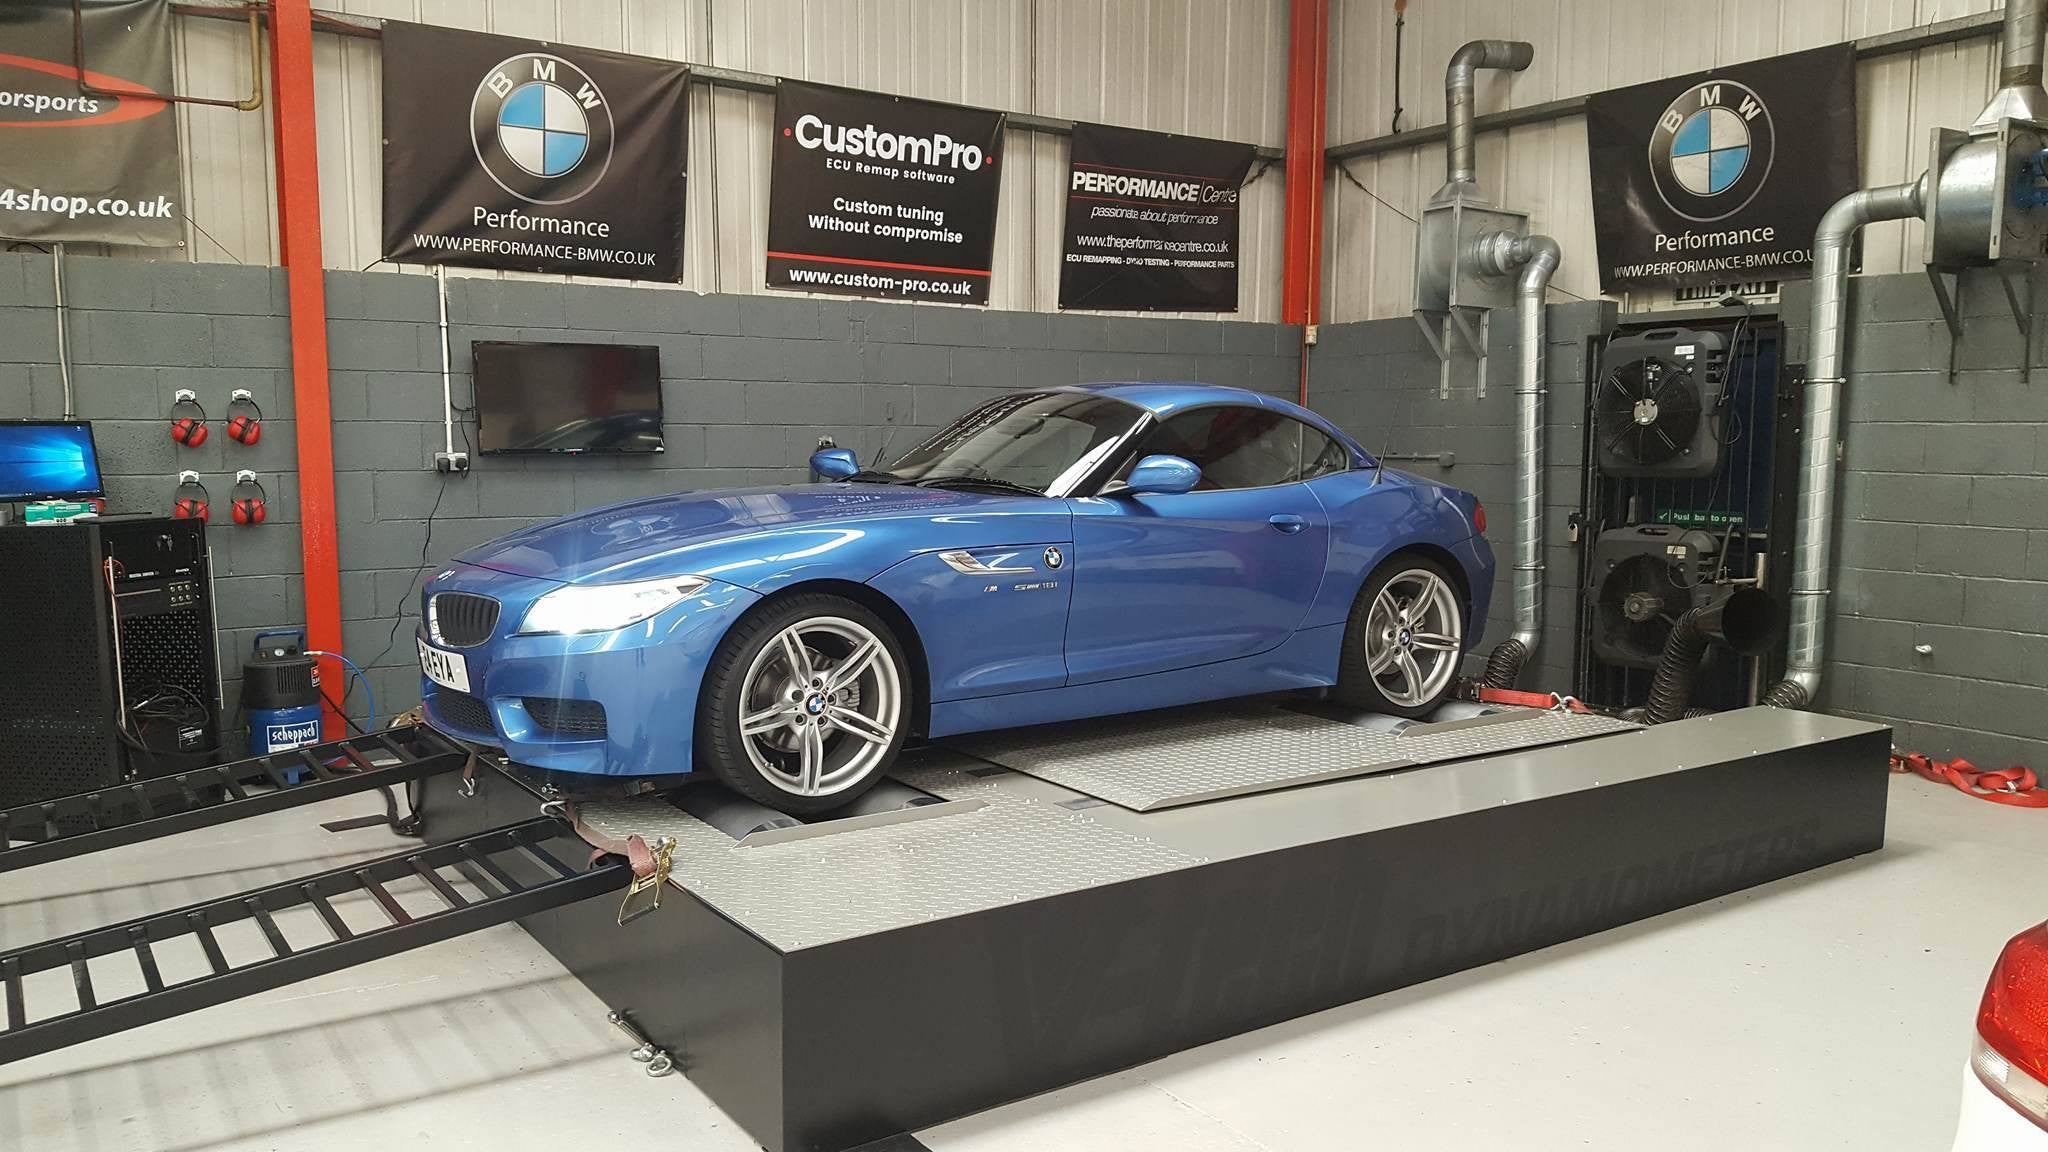 BMW Z4 18i - CustomPro remap